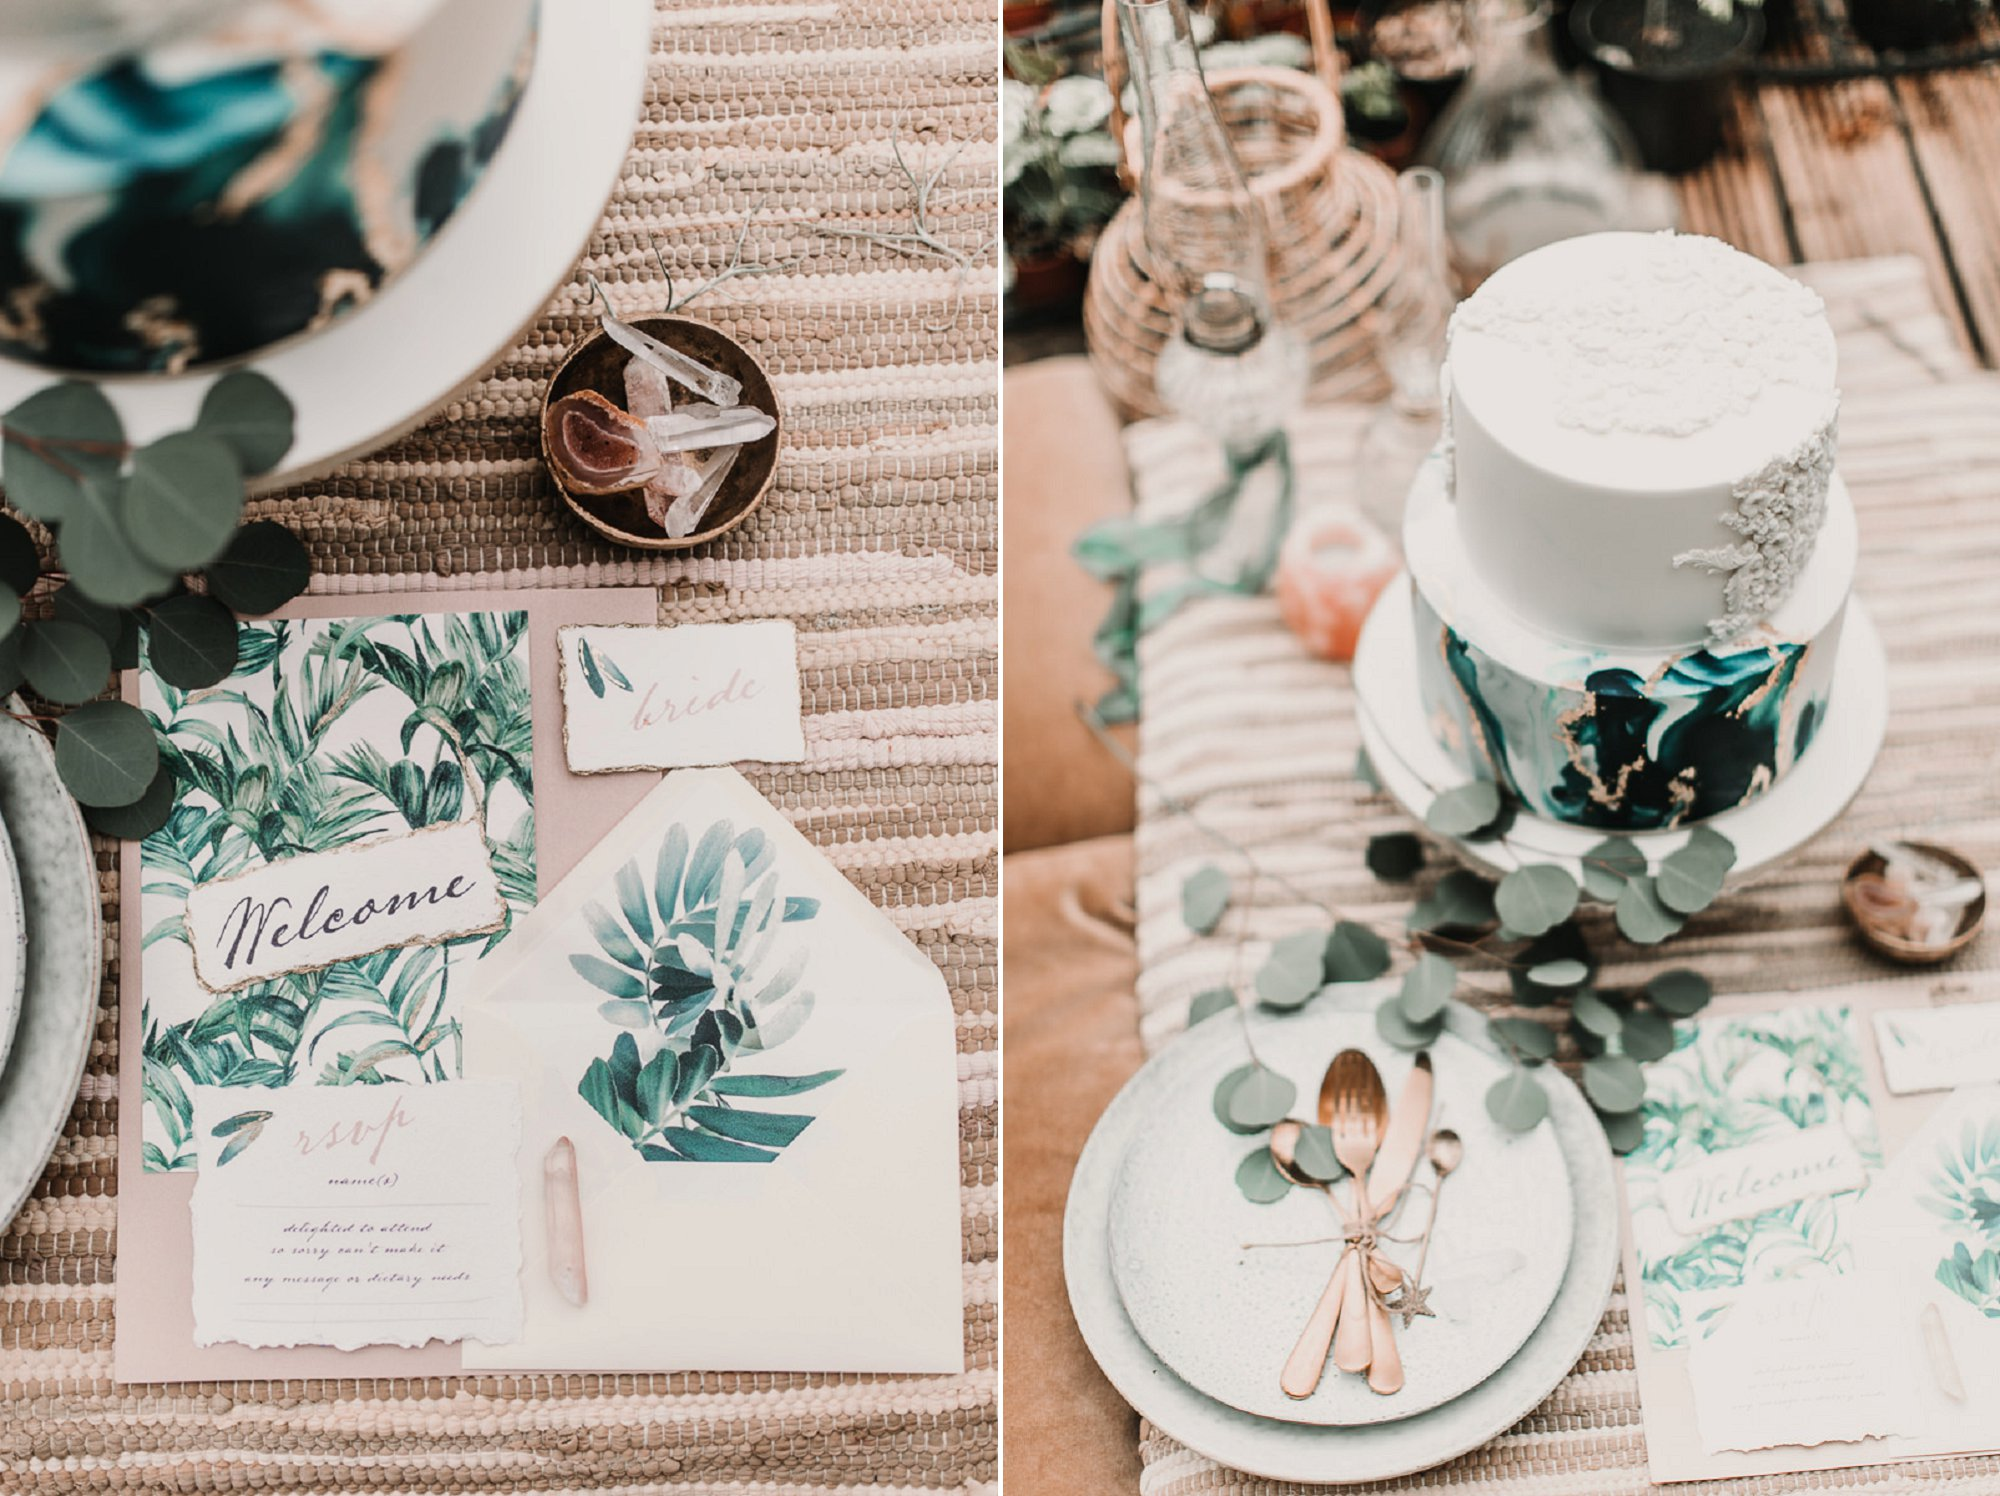 Blush and green Bohemian Wedding Inspiration bringing a little California to you where ever you are in the world. Relaxed styling and desert inspiration and vibes. Wedding ideas for boho brides who an effortlessly relaxed, bohemian wedding. Shot by Natalie Pluck Photography. See full blog post for credits and more inspiration here https://www.nataliepluck.com/bohemian-wedding-inspiration/ 